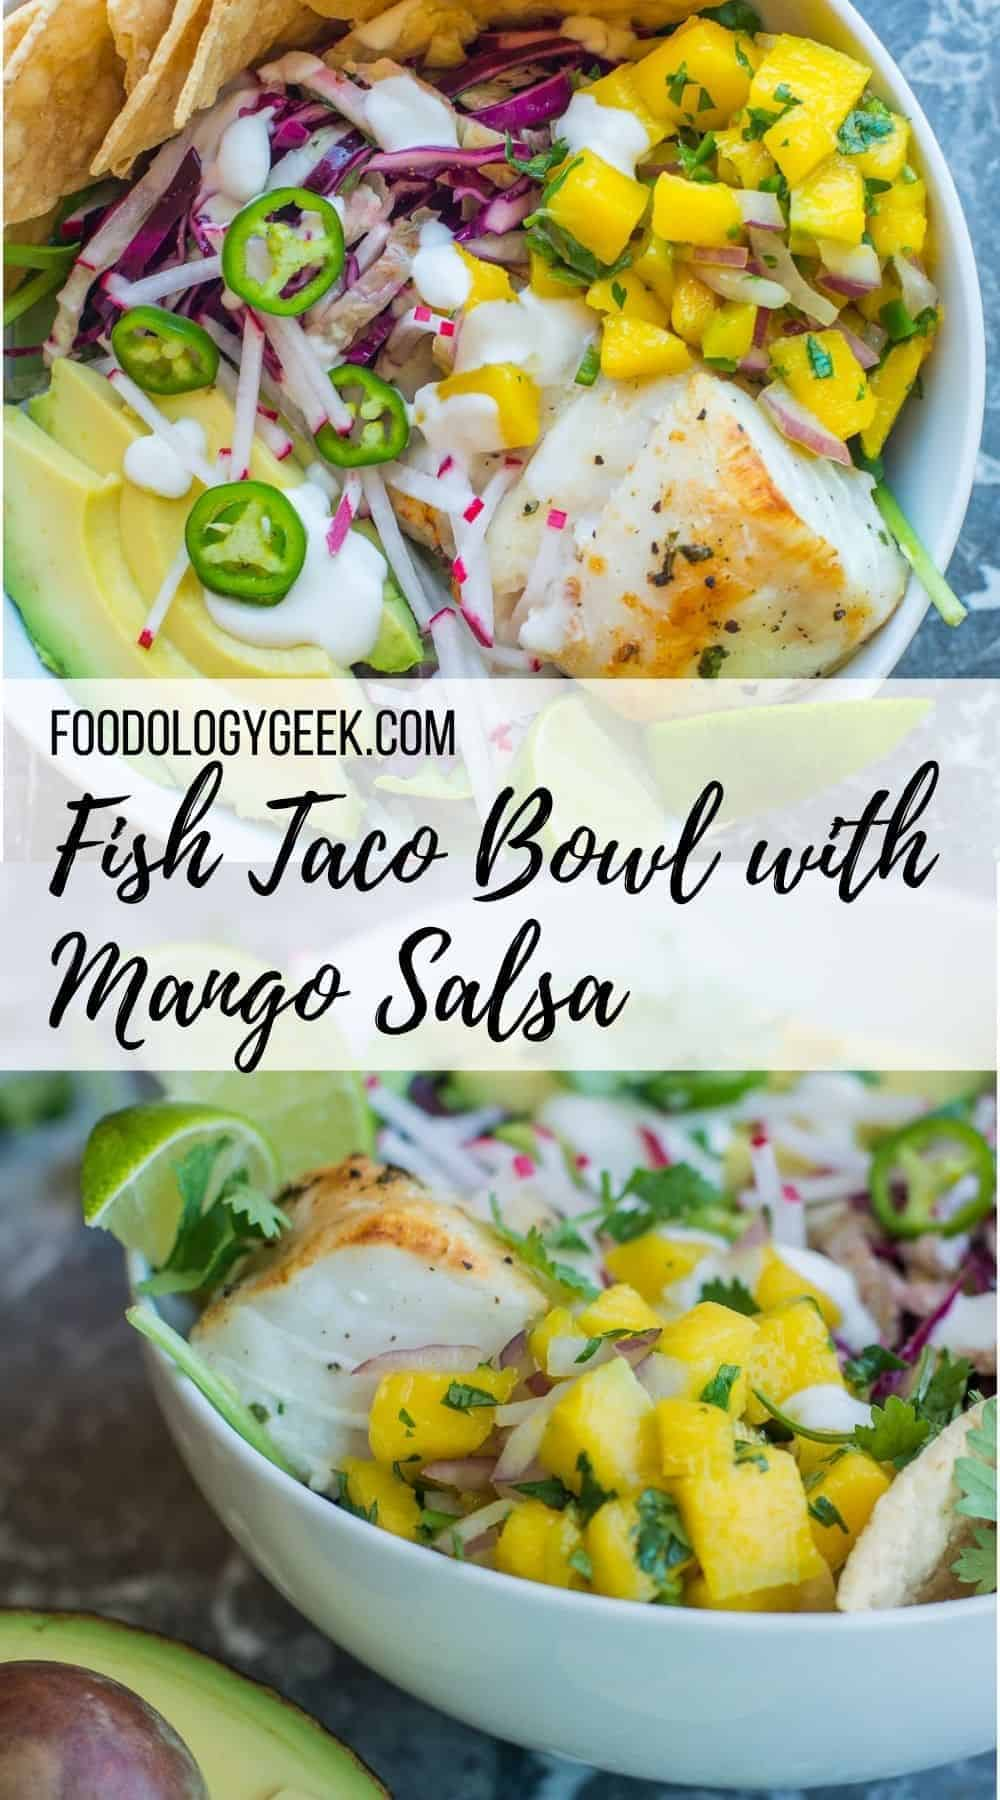 I'm not gonna lie. This Easy Meal Prep Bowl is heaven in your mouth. Tequila Lime Fish Taco Bowl with Mango Salsa – Hello!!! If you want to take meal prep to the next level. Follow Me!